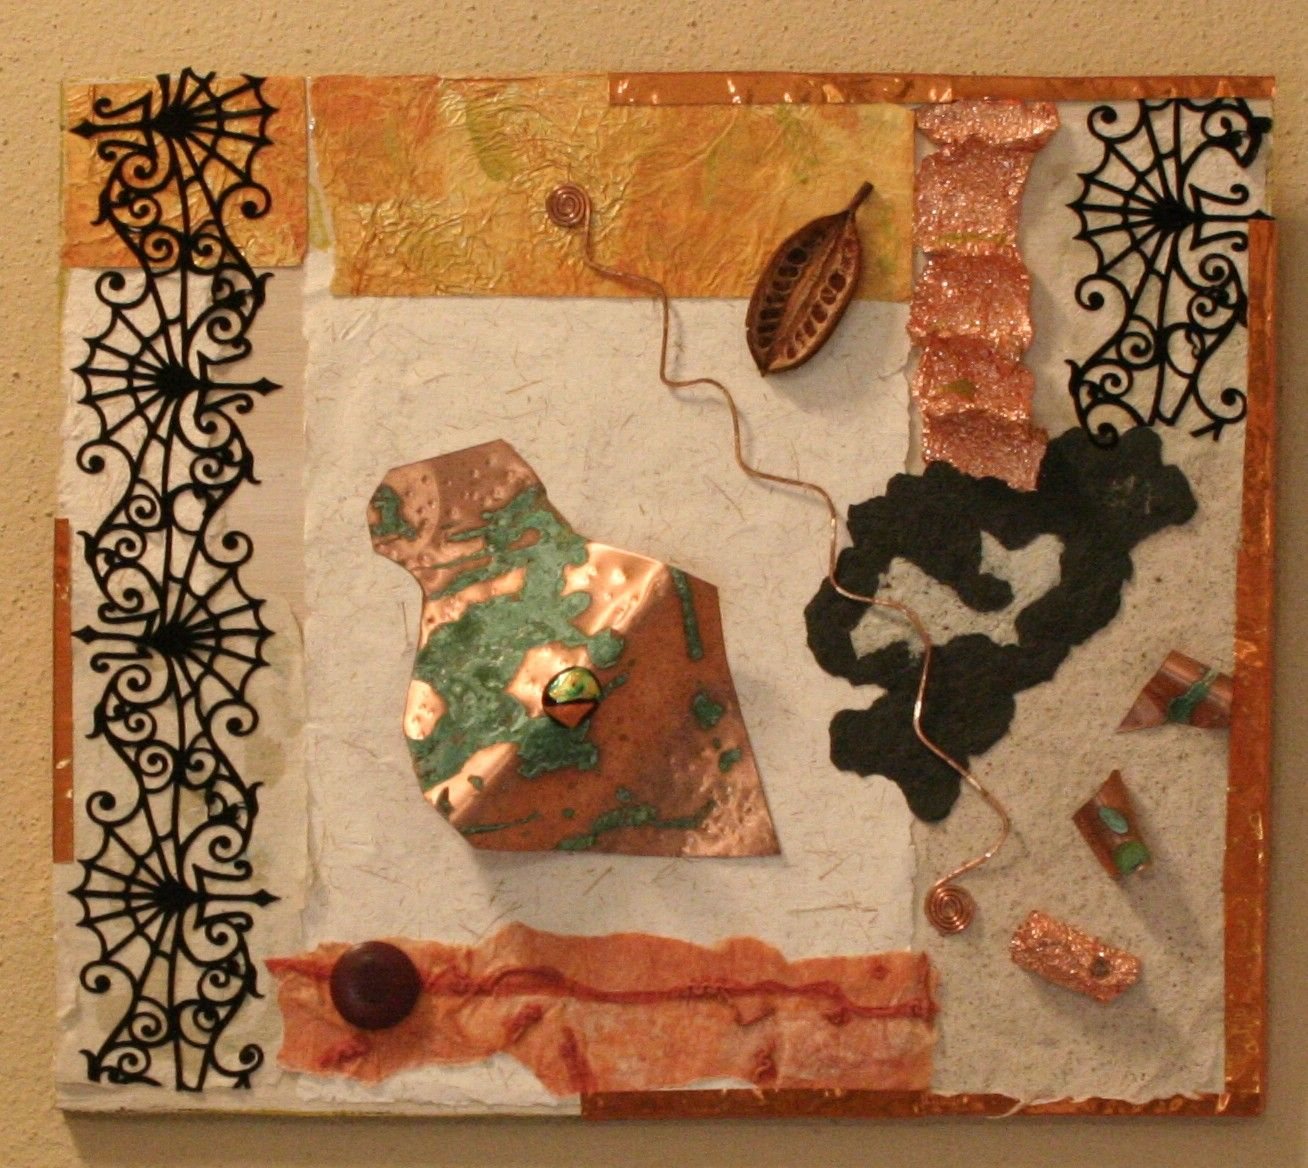 Out of Eden, handmade paper, lace, copper sheet, copper foil, patina & paint.